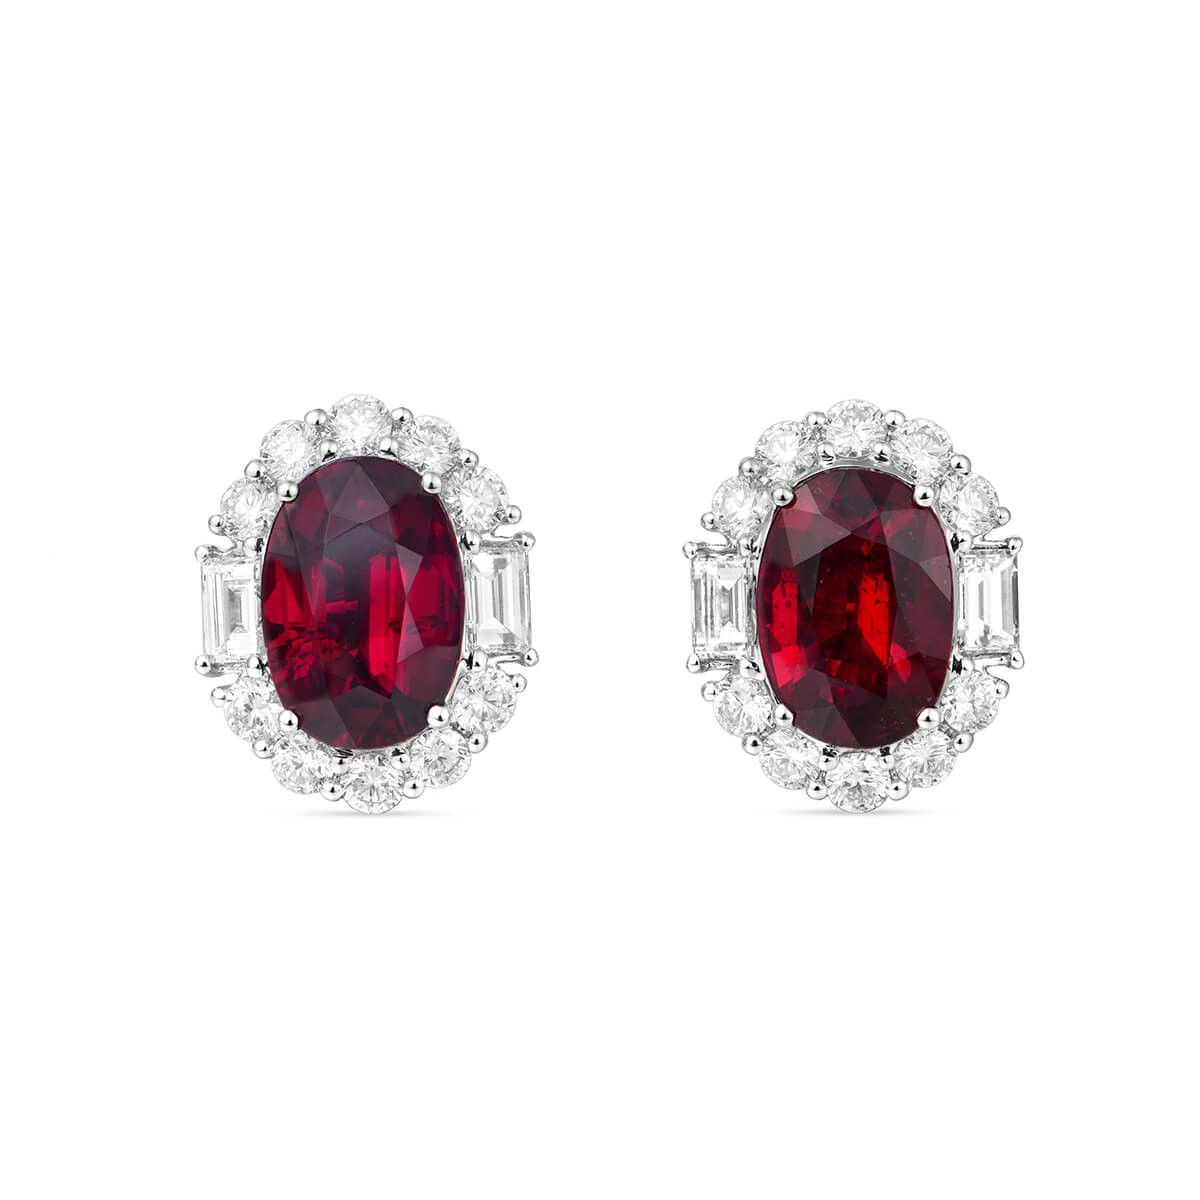 Natural Red Ruby Earrings 10 19 Ct Tw Grs Certified Jceg05415740 Unheated